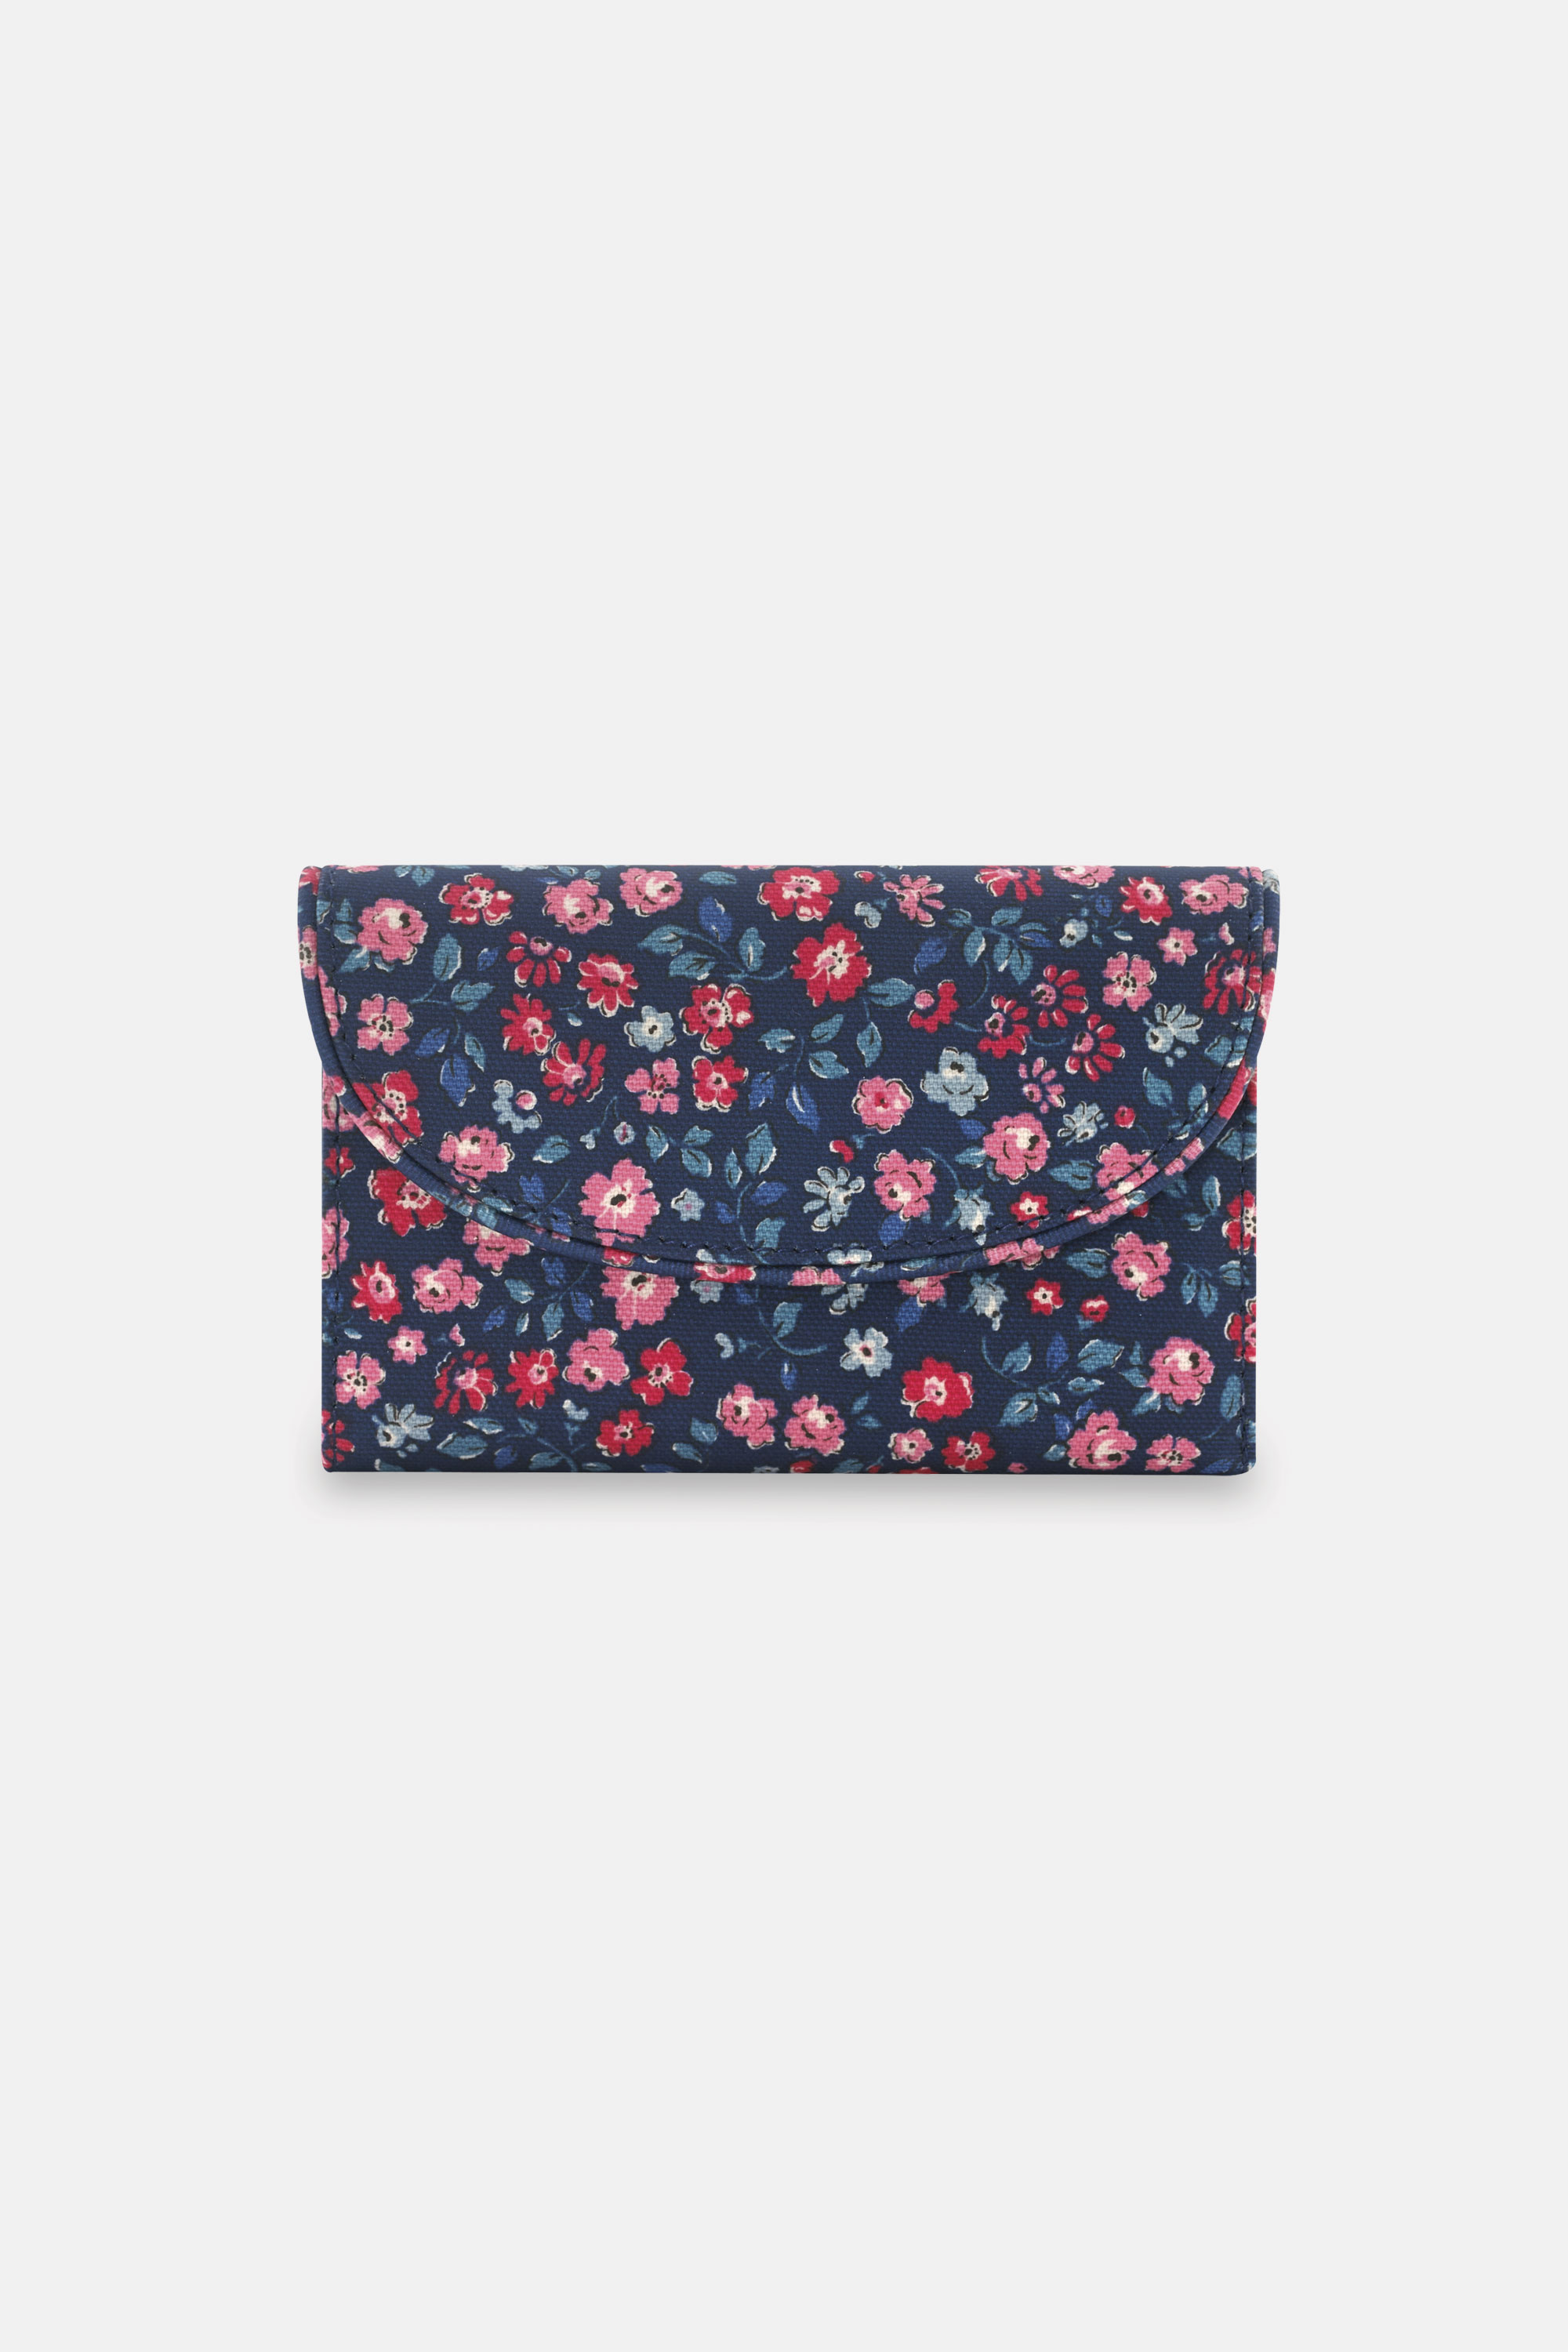 Cath Kidston Floral Folded Curve Wallet in True Navy, Dulwich Ditsy, 100% PVC Coated Cotton